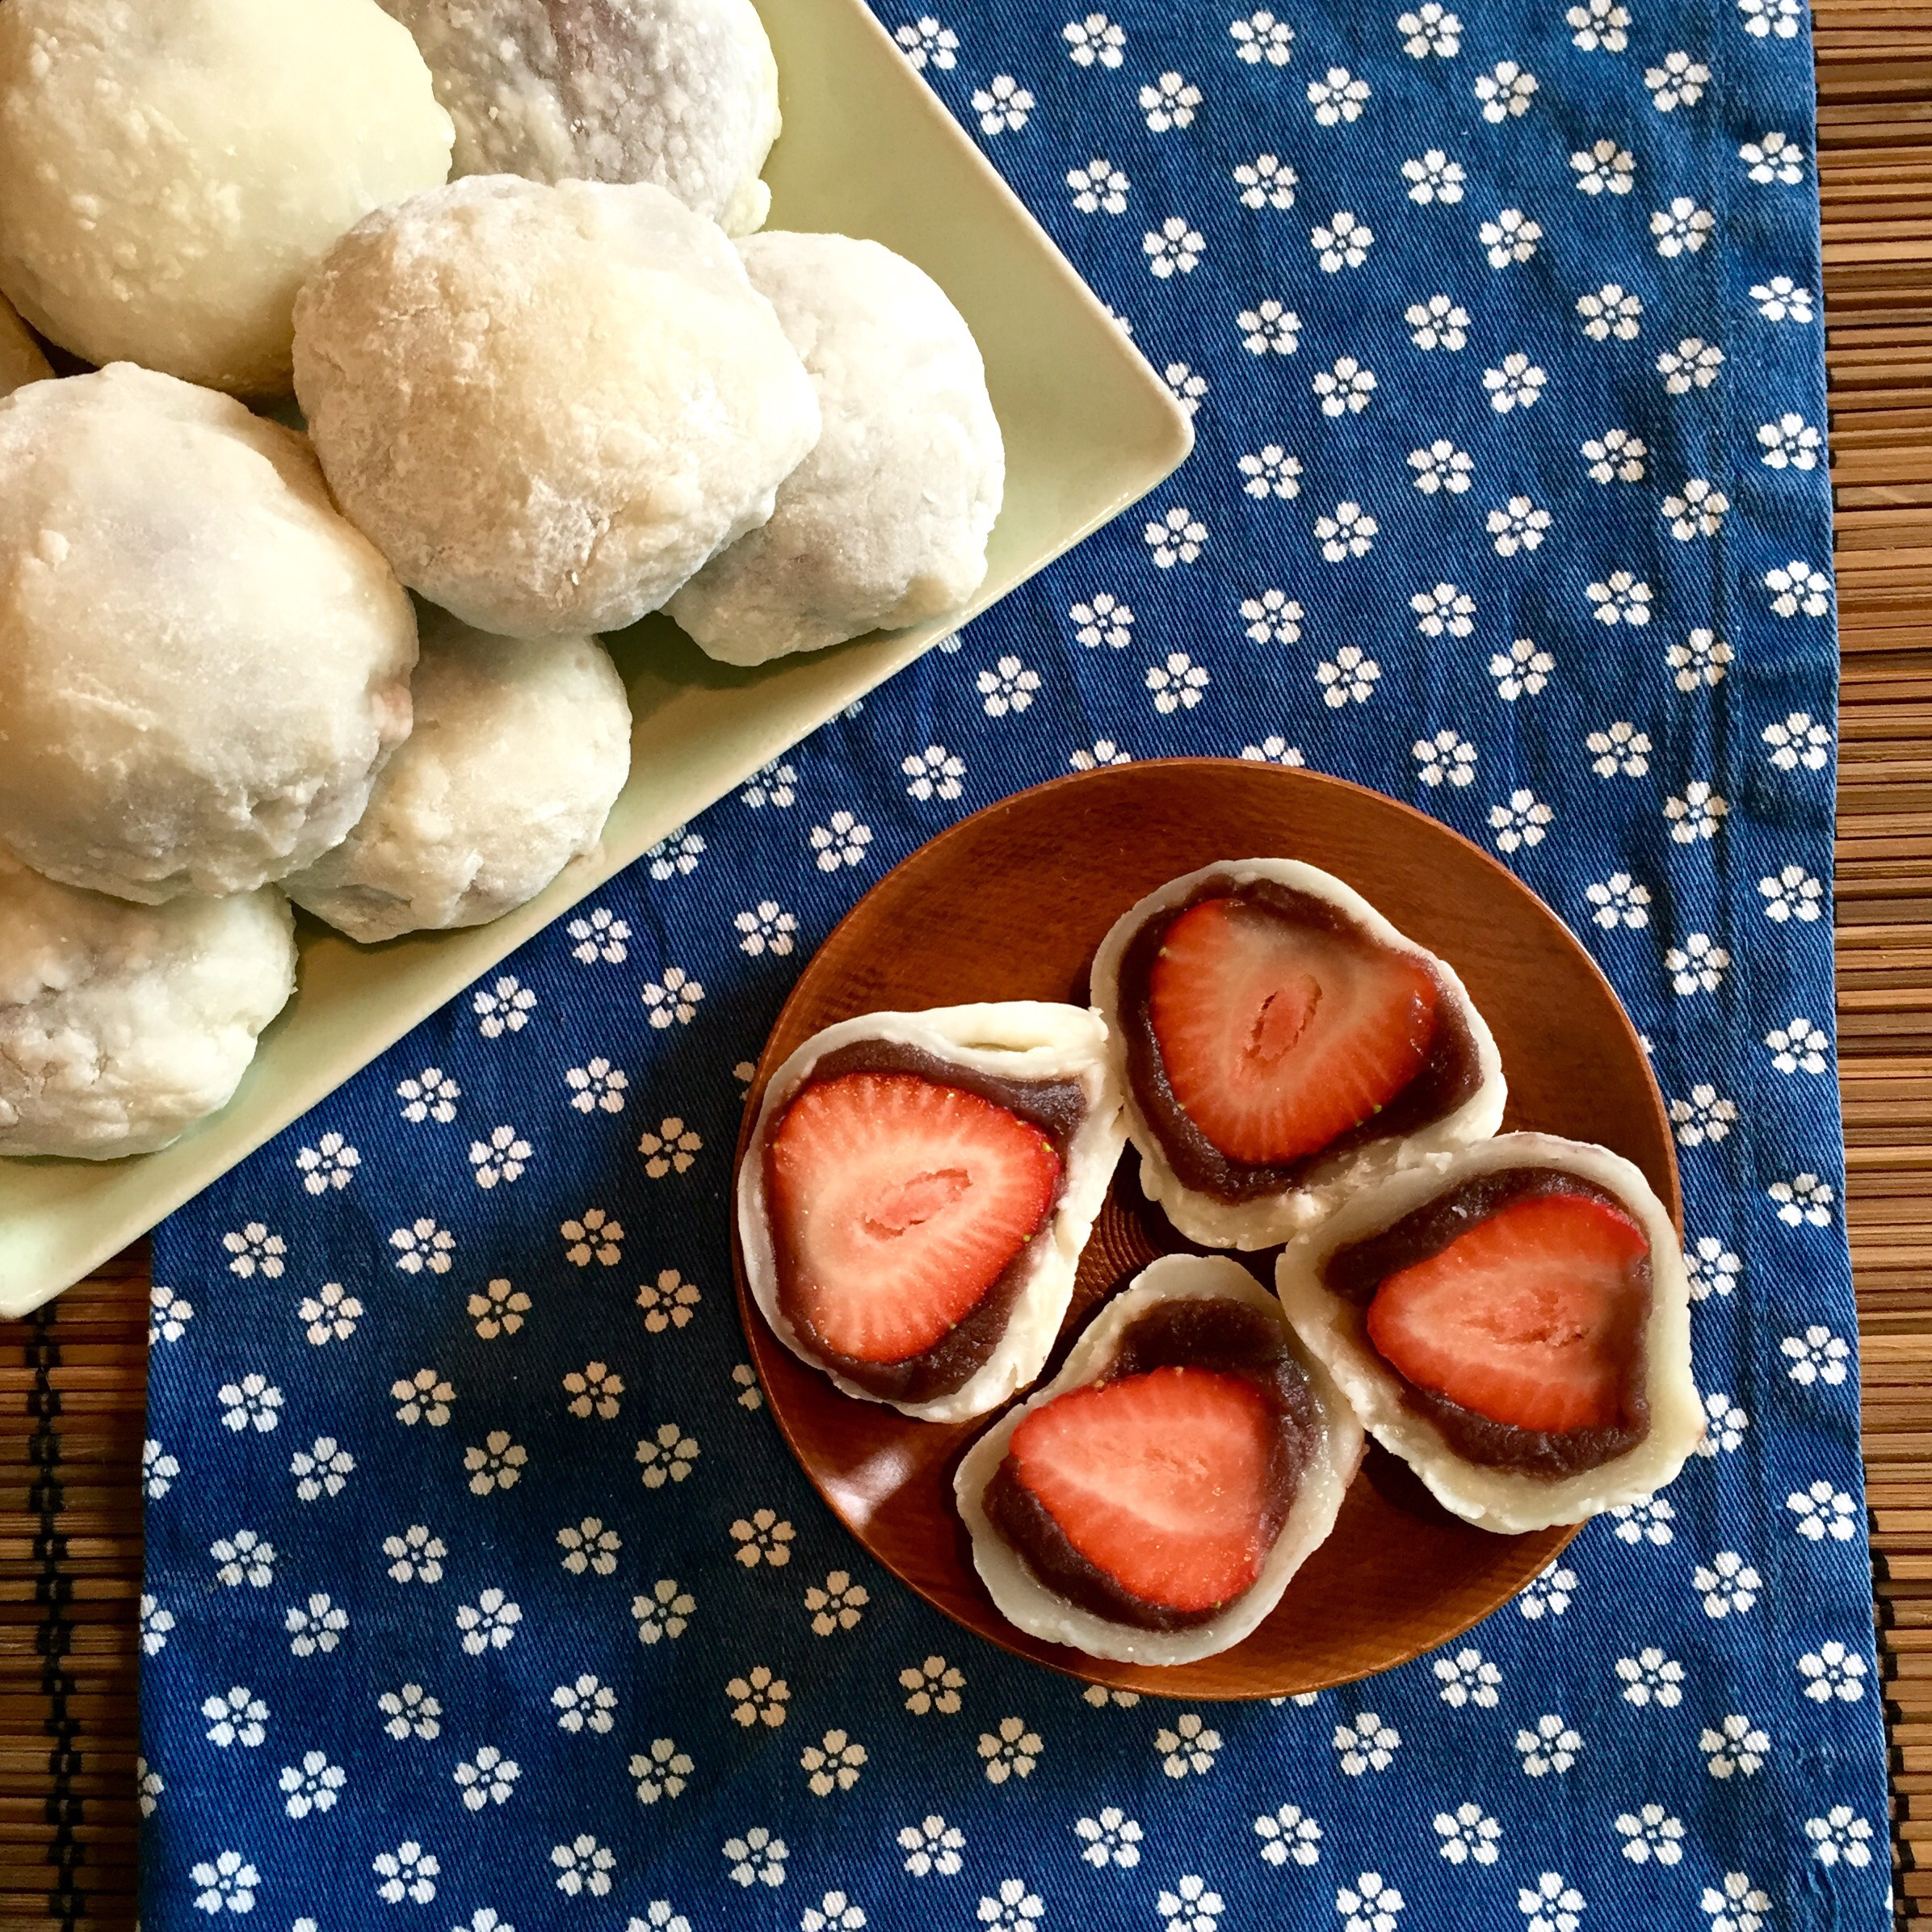 how to make a strawberry daifuku